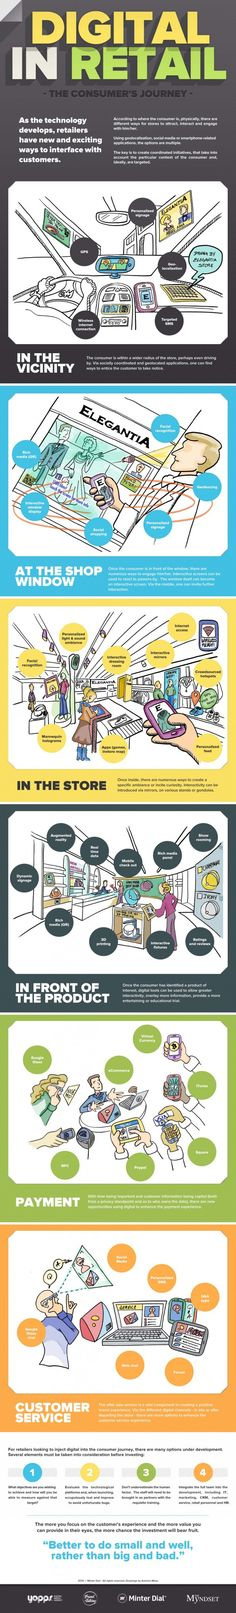 Use of digital in retail is in its infancy. There are pockets of brands in certain cities trying out new tools and methods to engage their c...